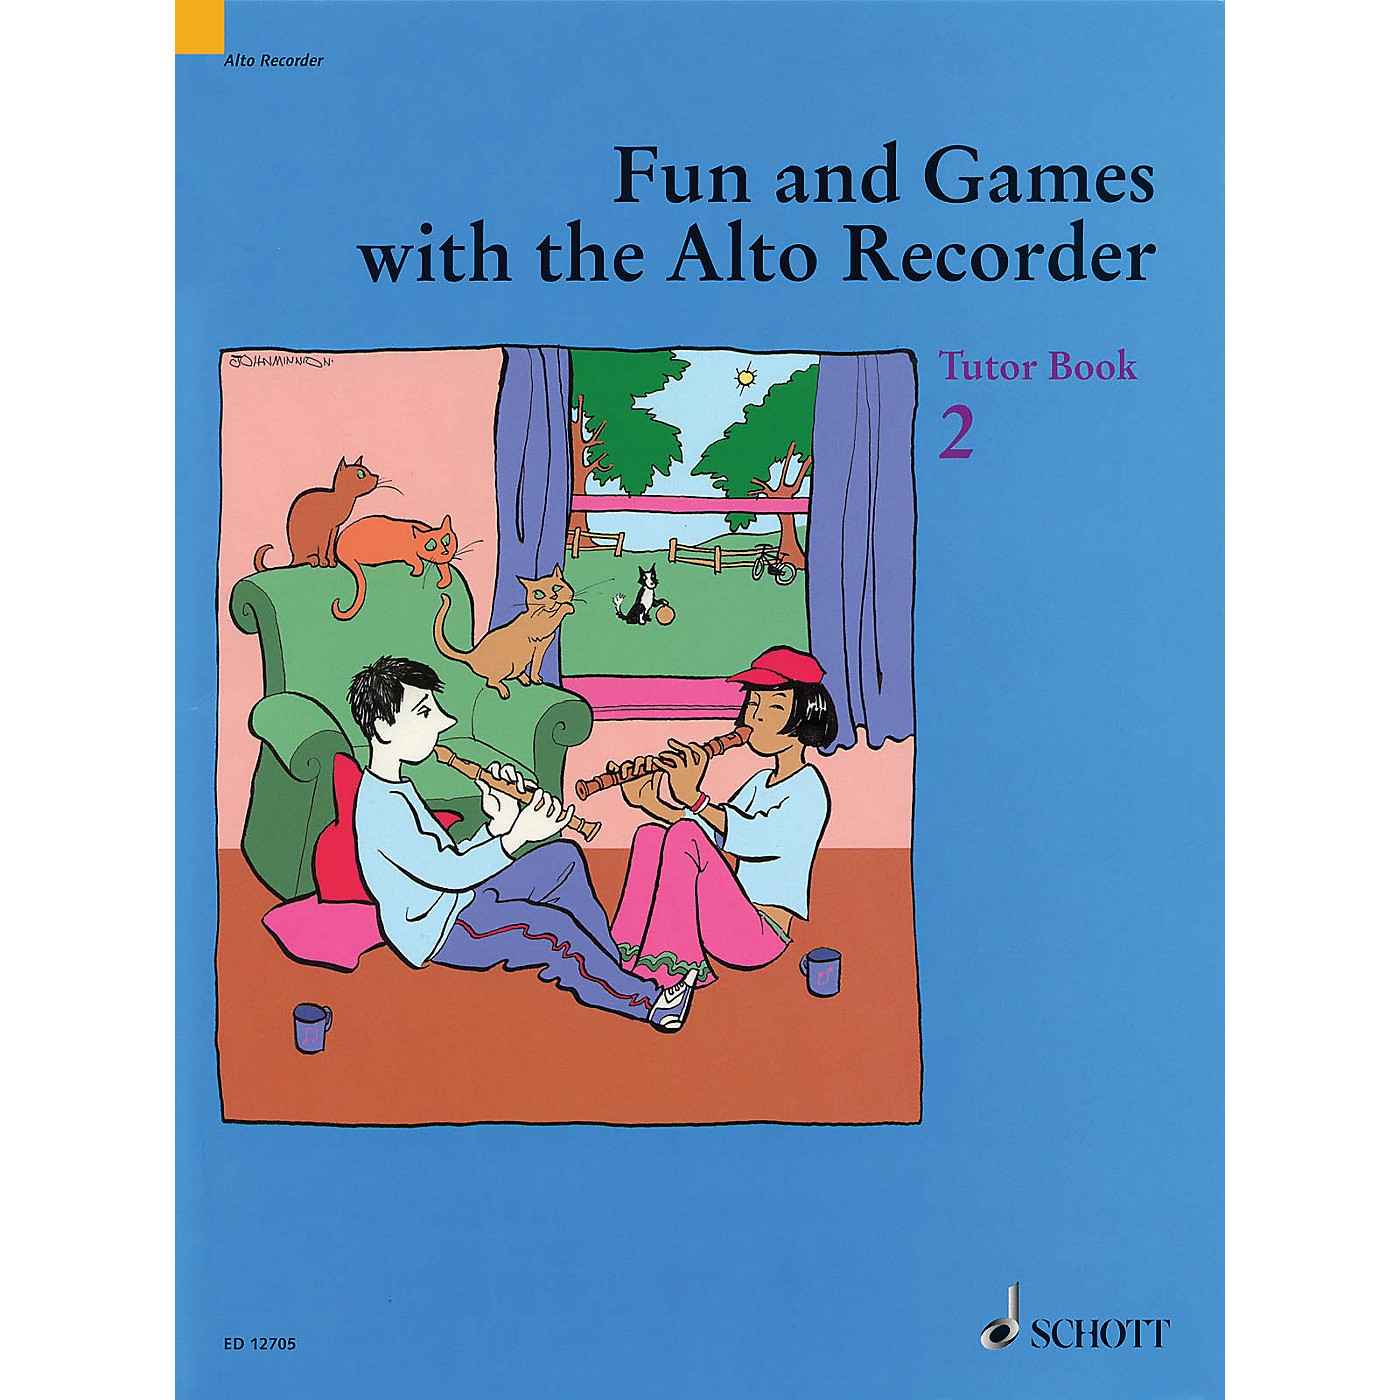 Schott Fun and Games with the Alto Recorder (Tutor Book 2) Schott Series thumbnail